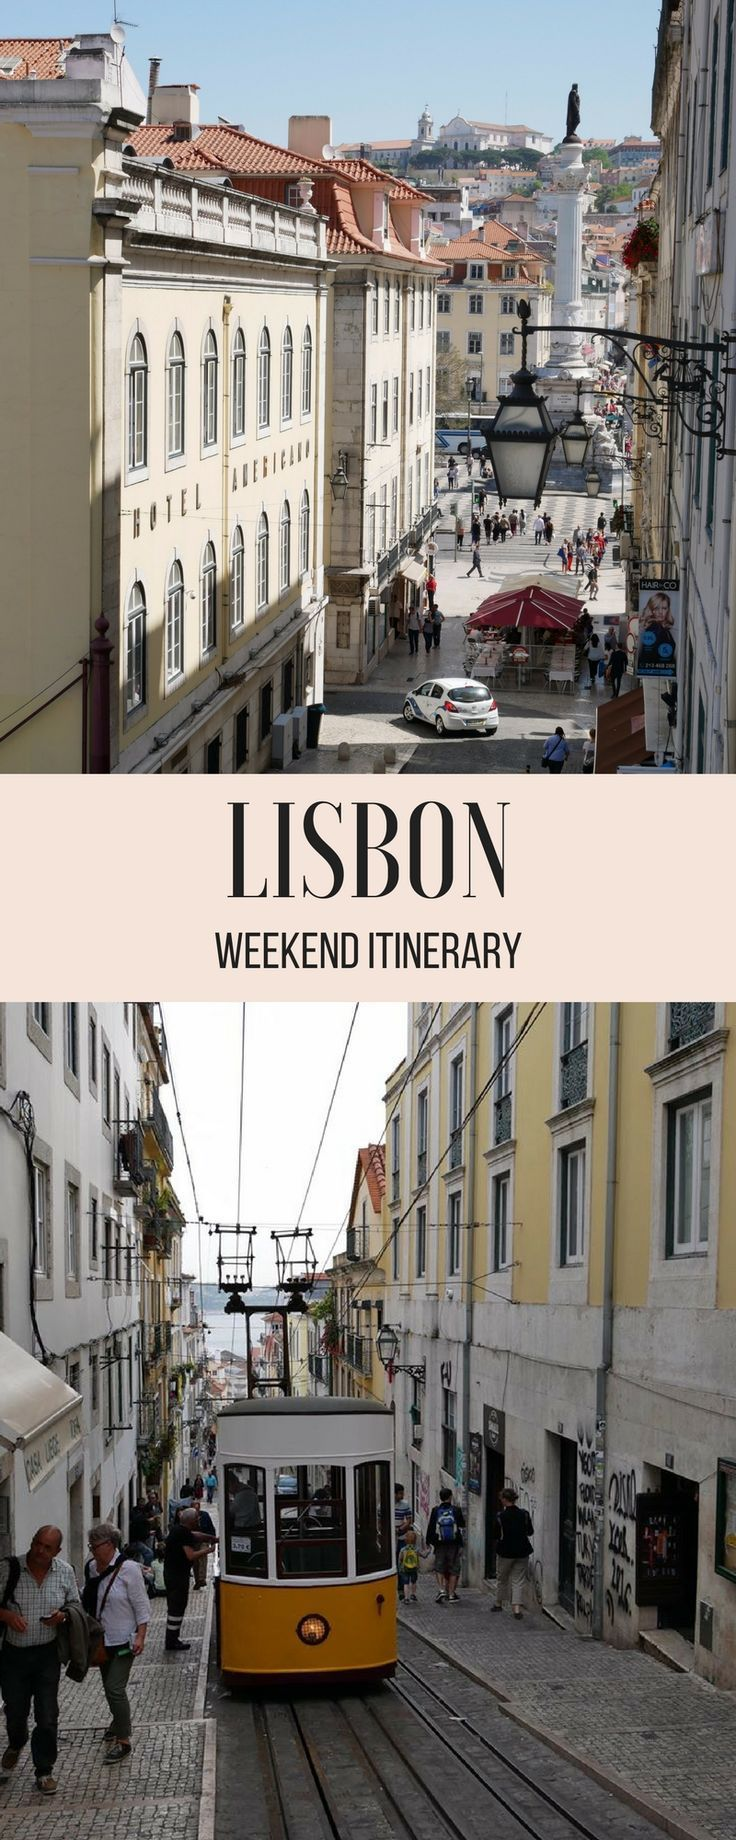 The perfect Lisbon itinerary to make the most of a weekend in Lisbon, Portugal. Suitable for all ages, this itinerary includes must-see Lisbon attractions, tips on where to eat and practical info to make the most of your weekend in Lisbon. #lisbon #portugal #itinerary